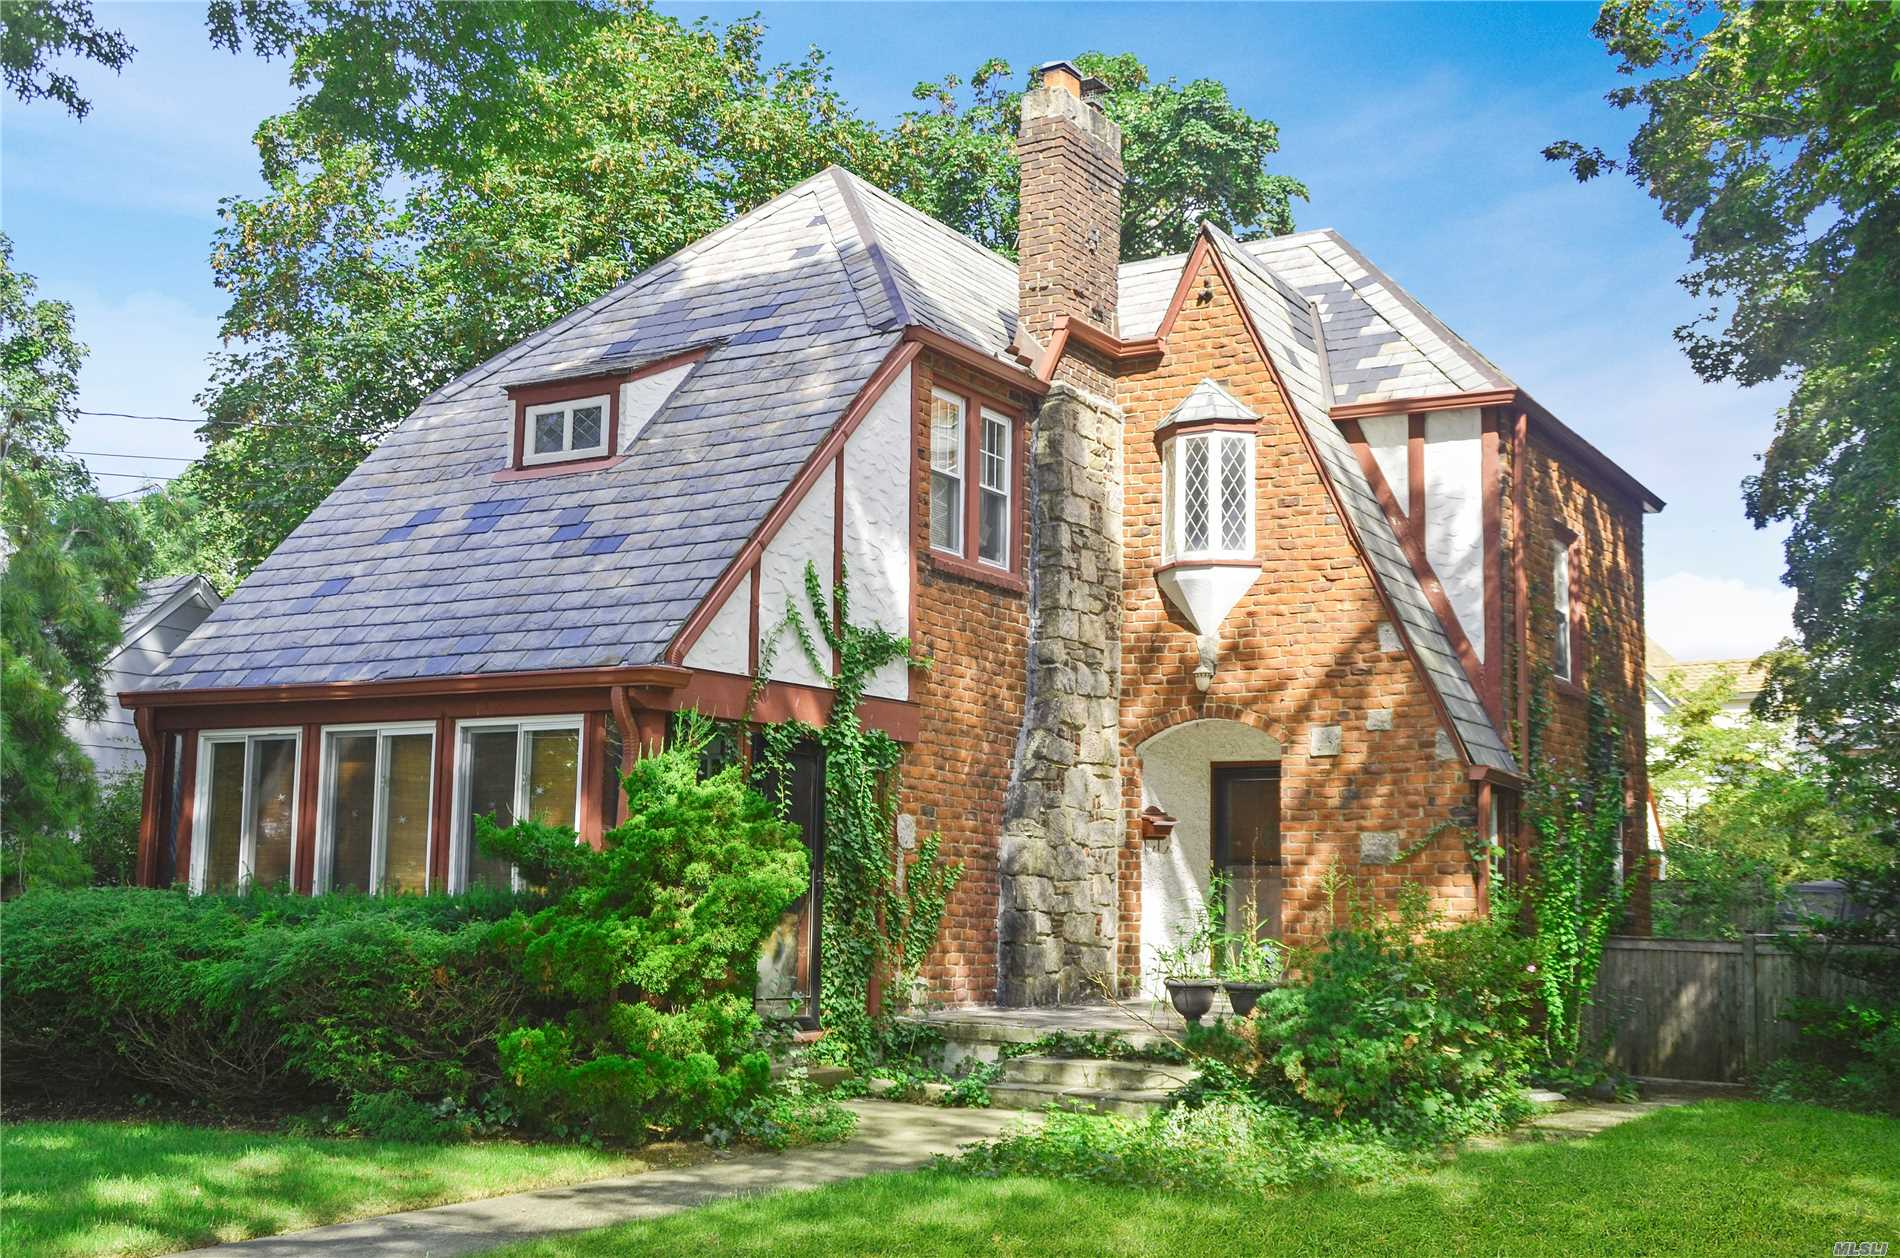 Charming Storybook Brick Colonial Featuring Wood Floors, Wood Burning Fireplace; Situated On An Oversized Lot. This Home Features A Newer Kitchen, Slate Roof, Back Patio, 2.5 Bathrooms, Fully Fenced Yard, And A 2 Car Garage. Only Minutes To The Elementary And High School.